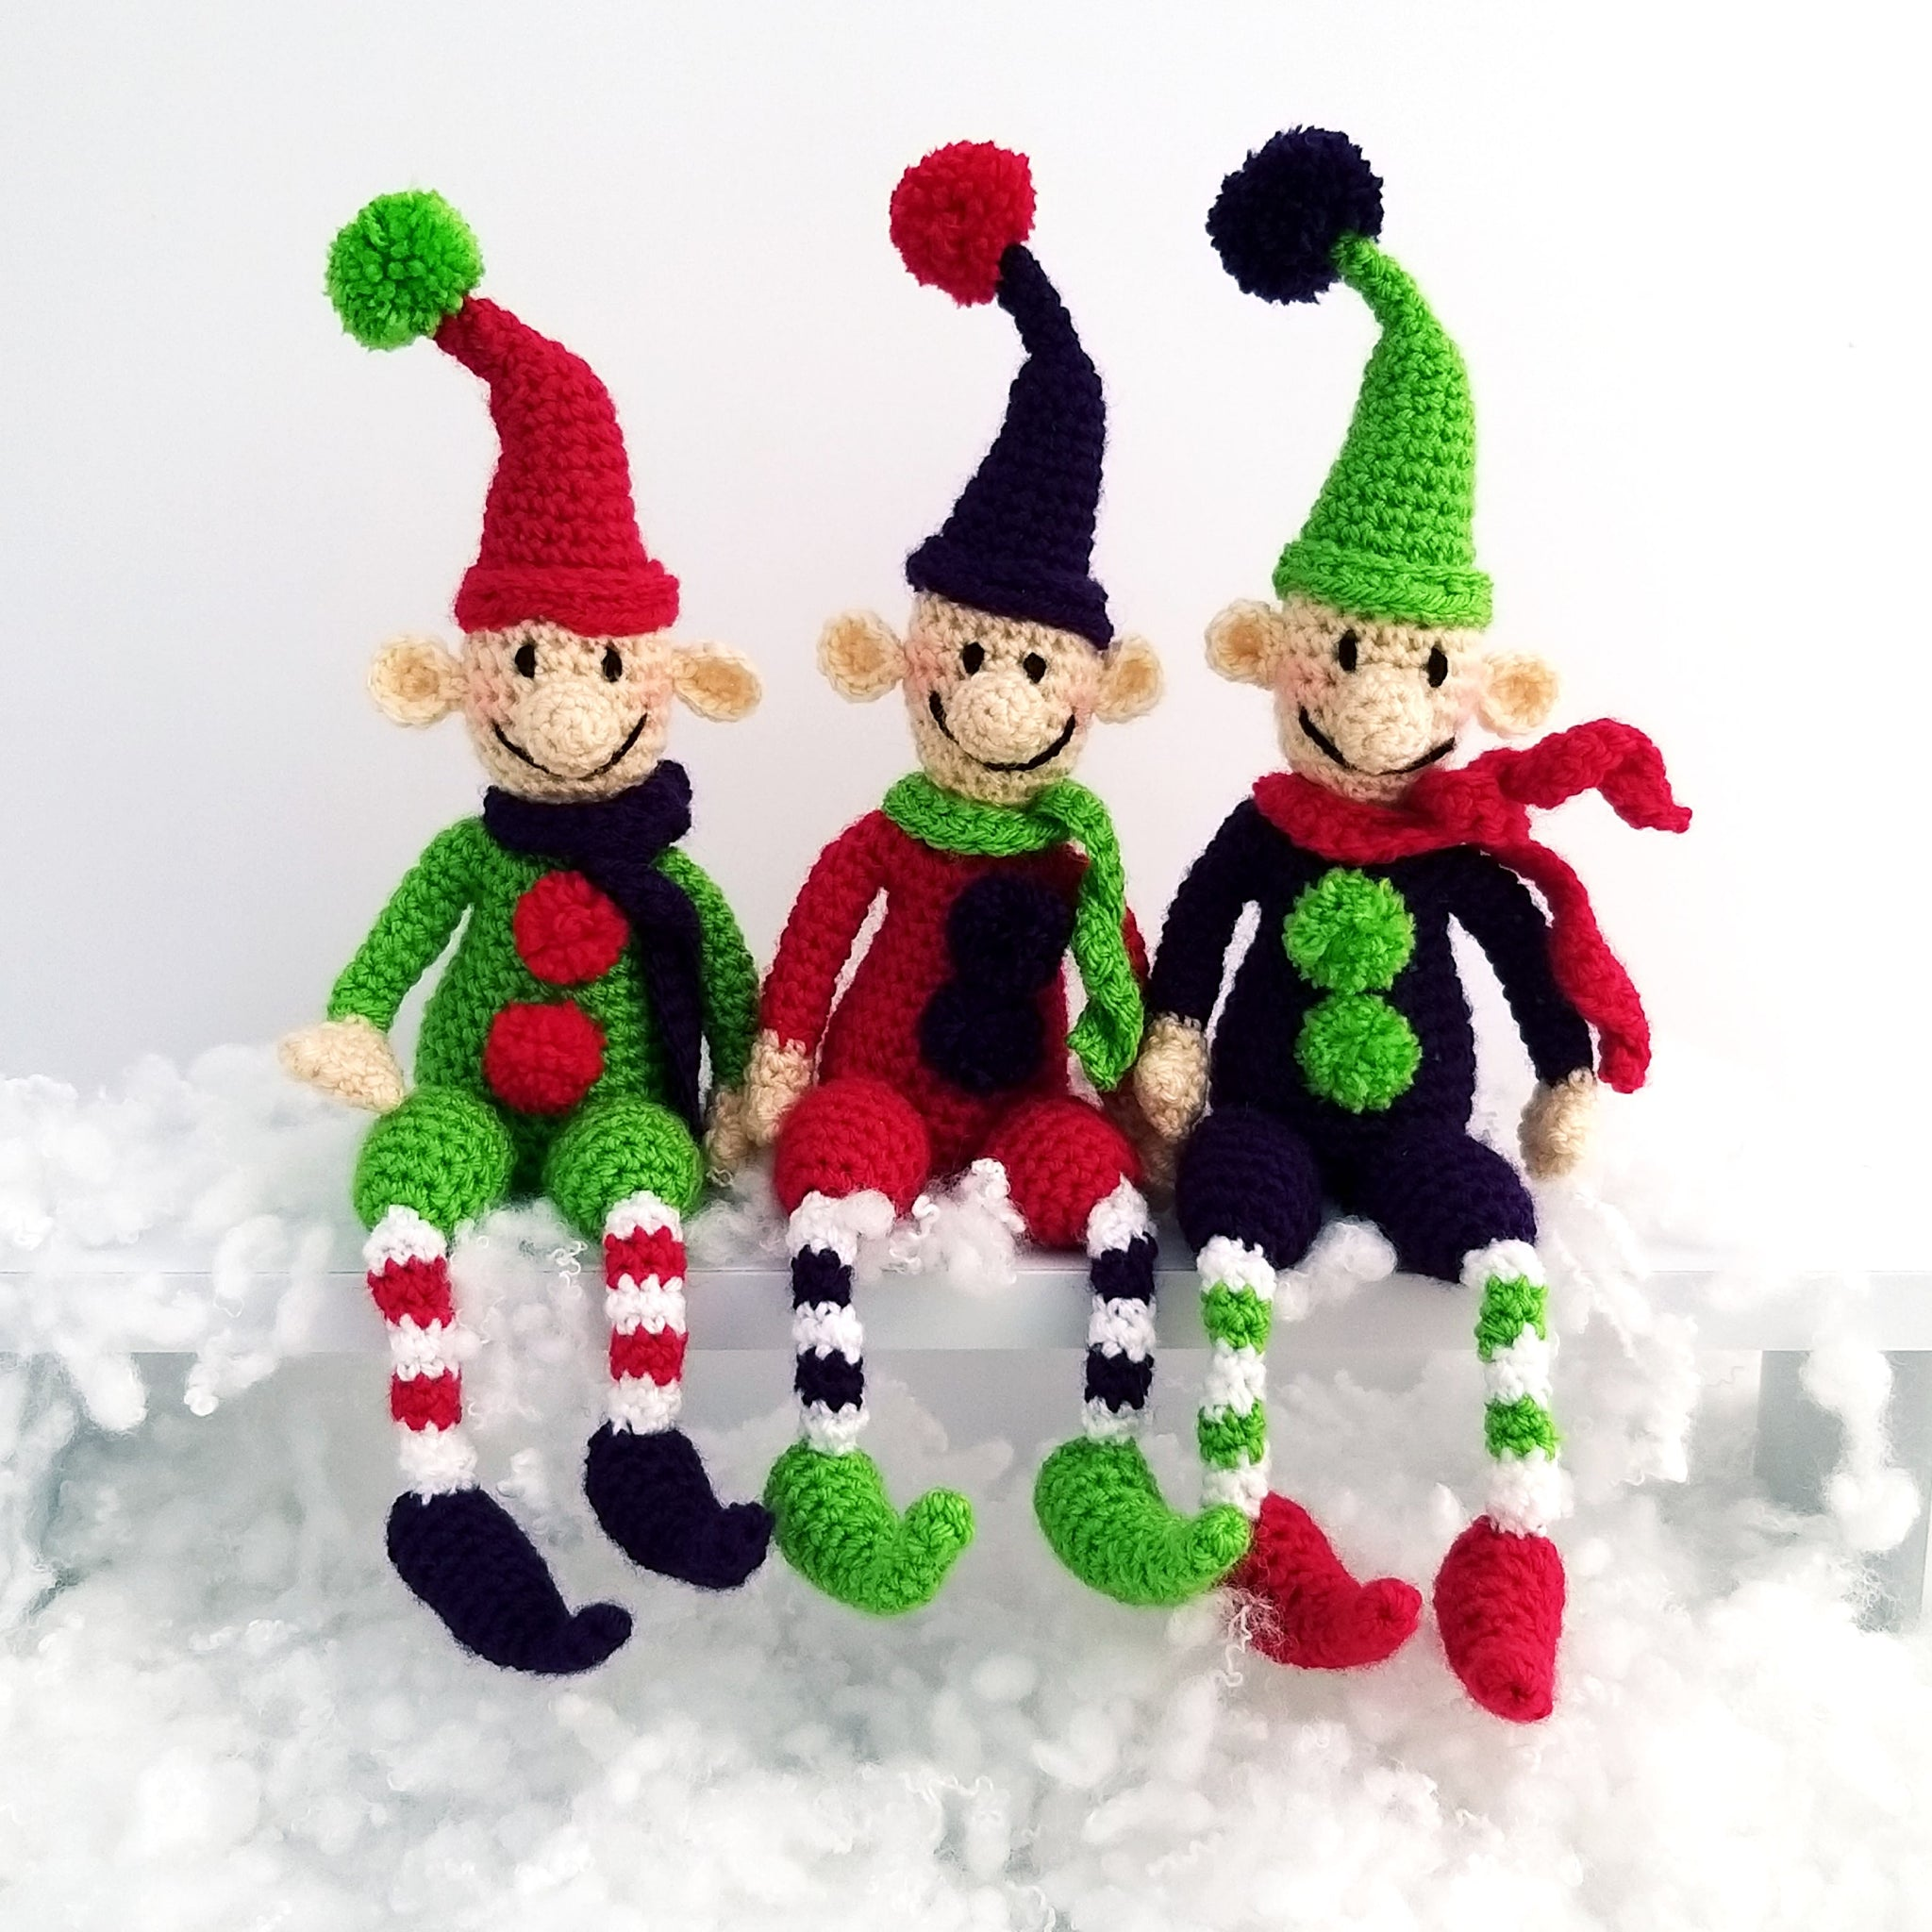 Christmas Elves Kit - Ernie, Bernie & Sid